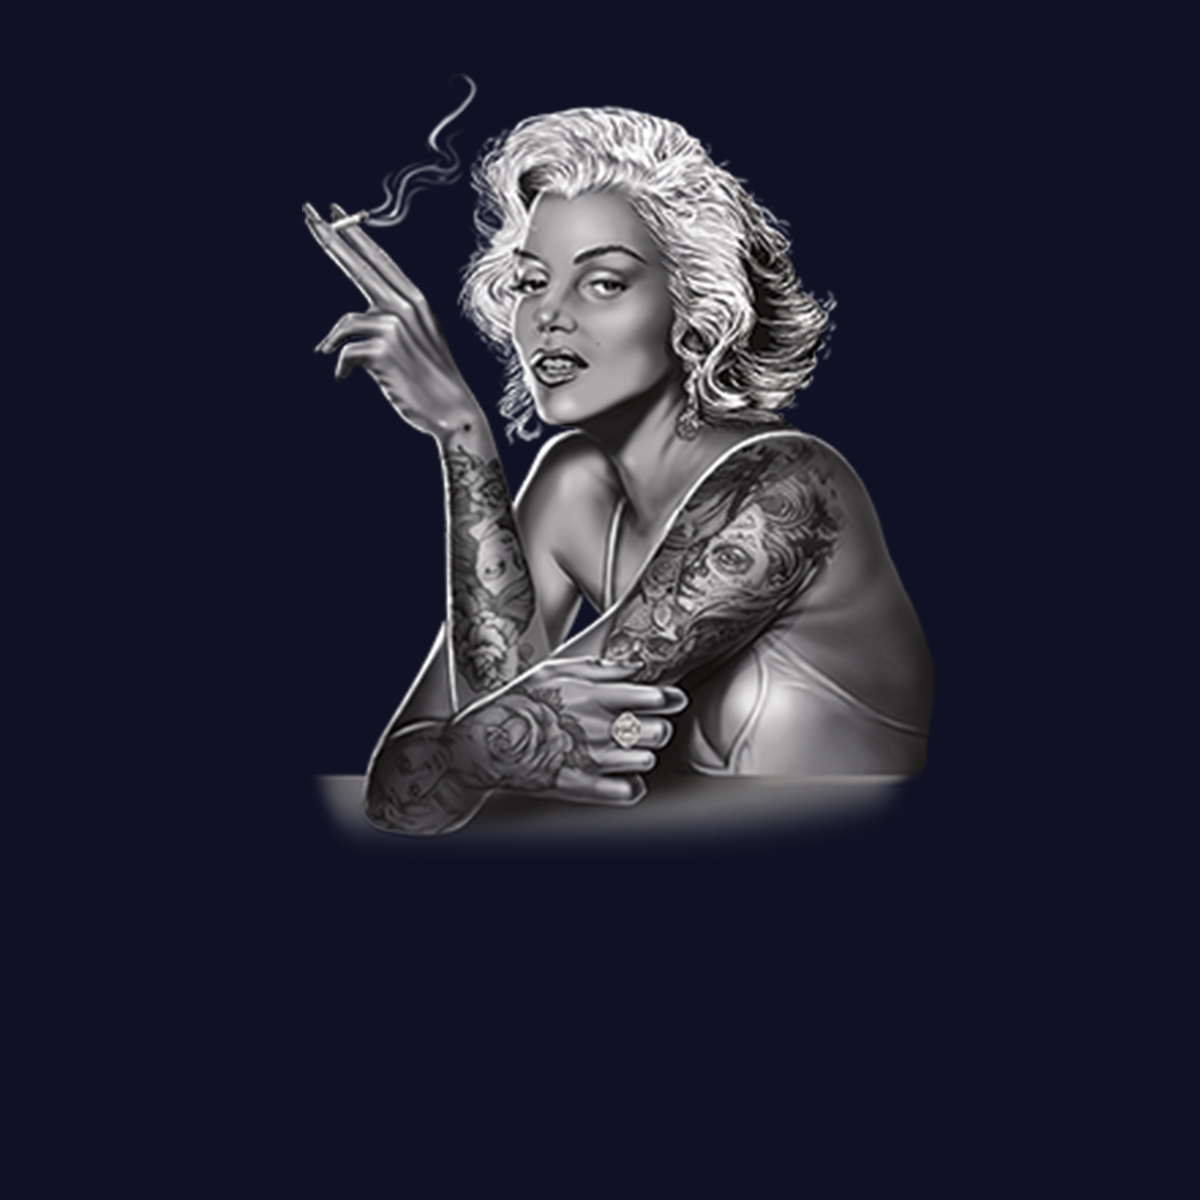 Marilyn-Monroe-Smoking-Tattoo-Men-T-shirt-XS-5XL thumbnail 9